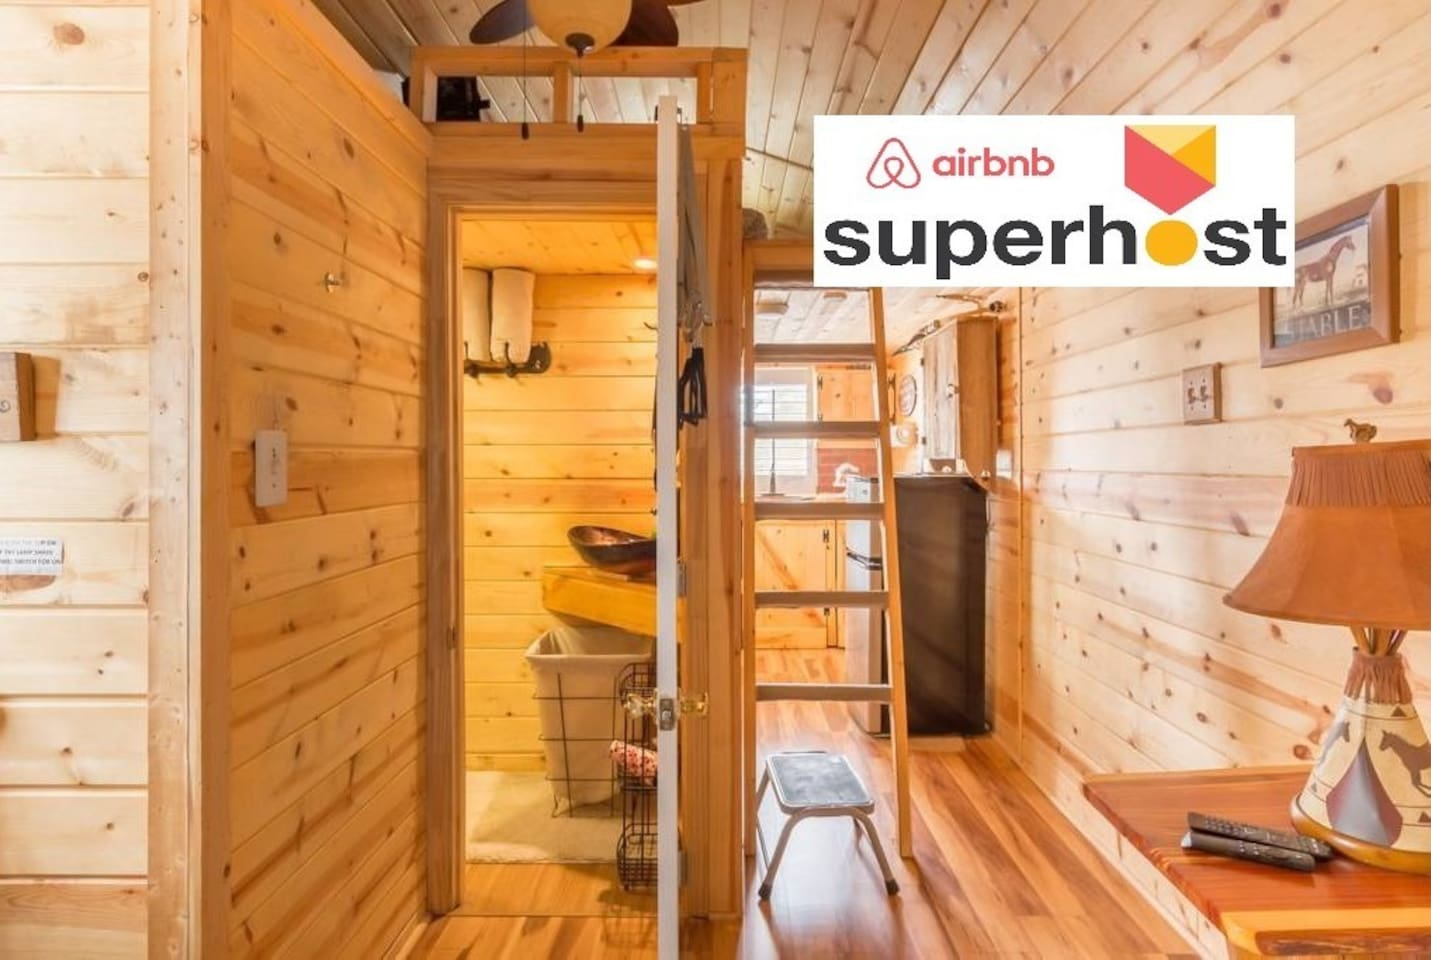 """Fabulous custom built Tiny House sleeps 2 people very comfortably beautifully tiled shower with household water flushing commode located on 4 acre horse farm near restaurants entertainment grocery stores malls.....""""Come have the time of your life"""""""